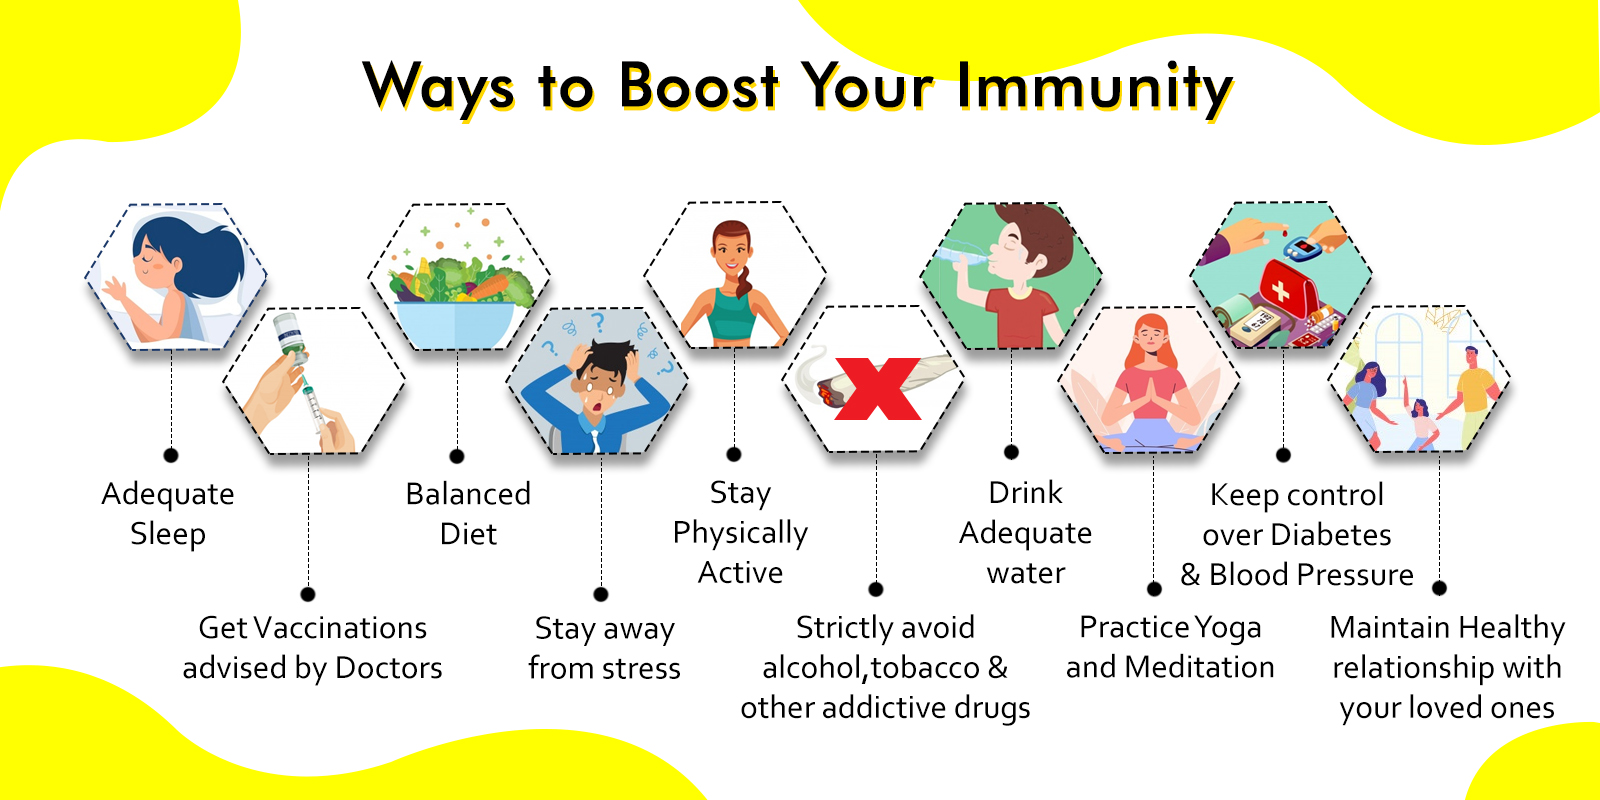 BOOST YOUR IMMUNITY TO FIGHT DEADLY DISEASES LIKE COVID-19.